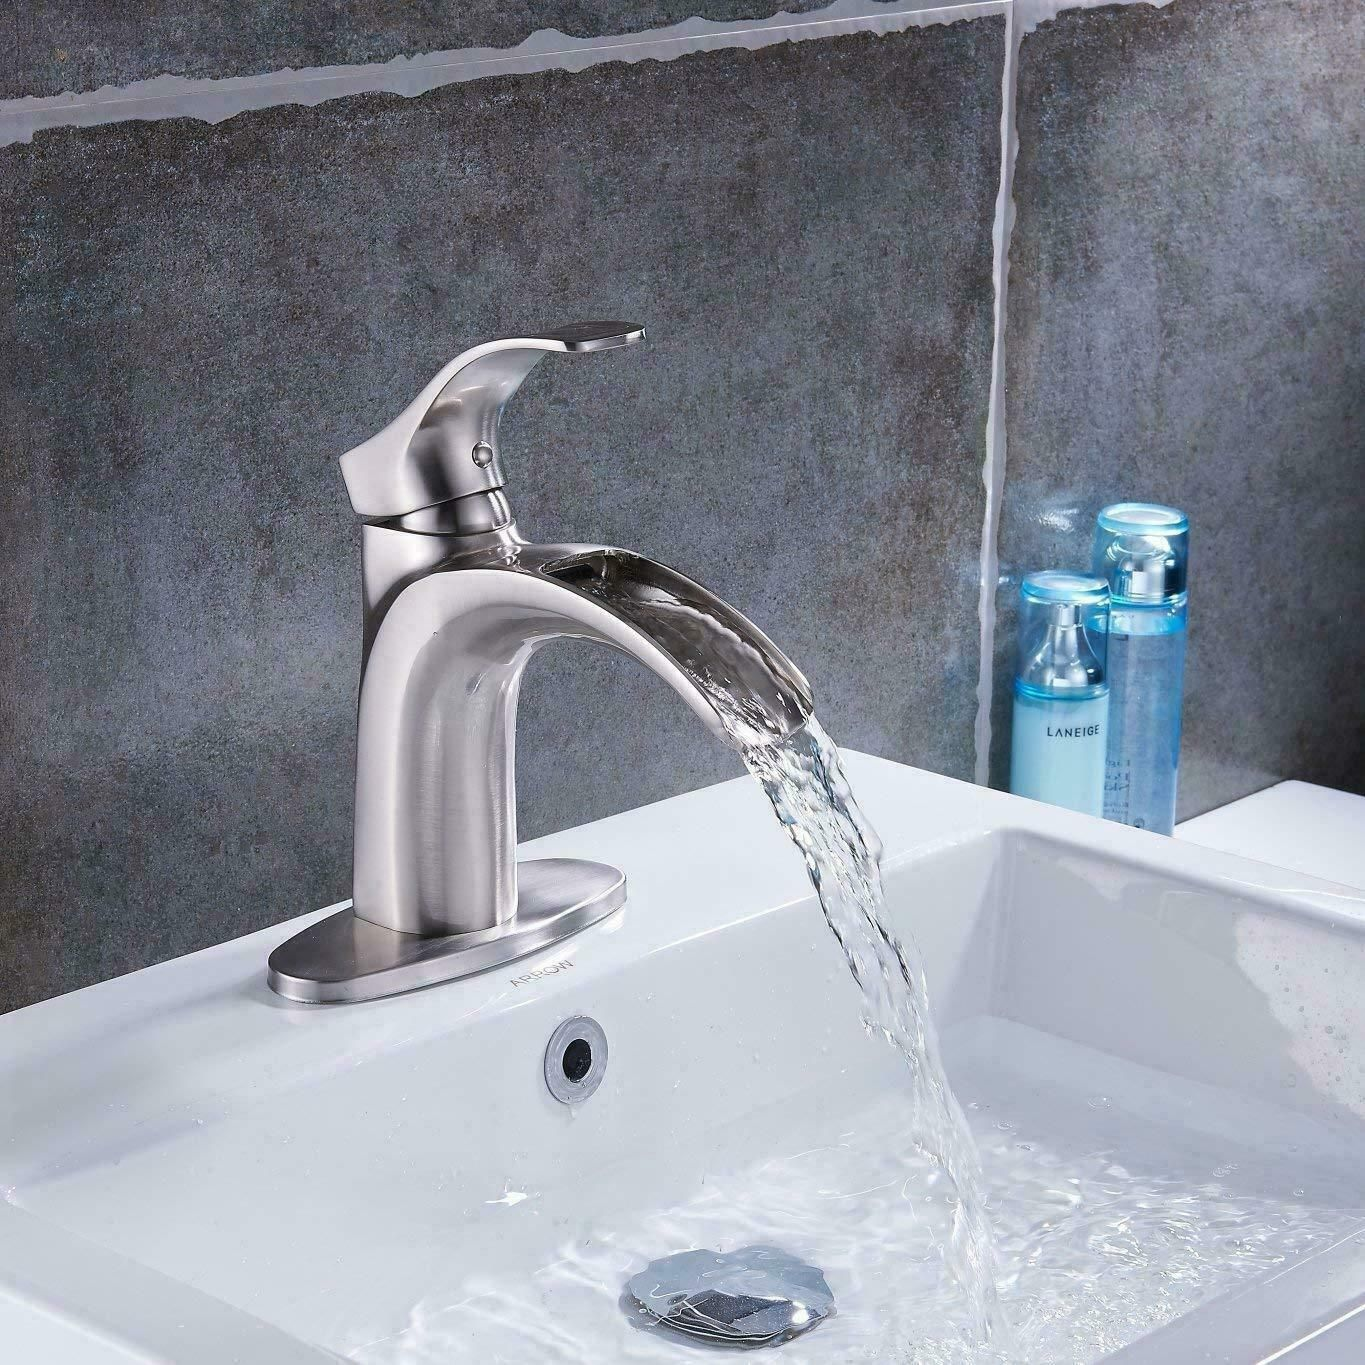 Brushed Nickel Sink Faucet Waterfall Bathroom Mixer Tap Deck